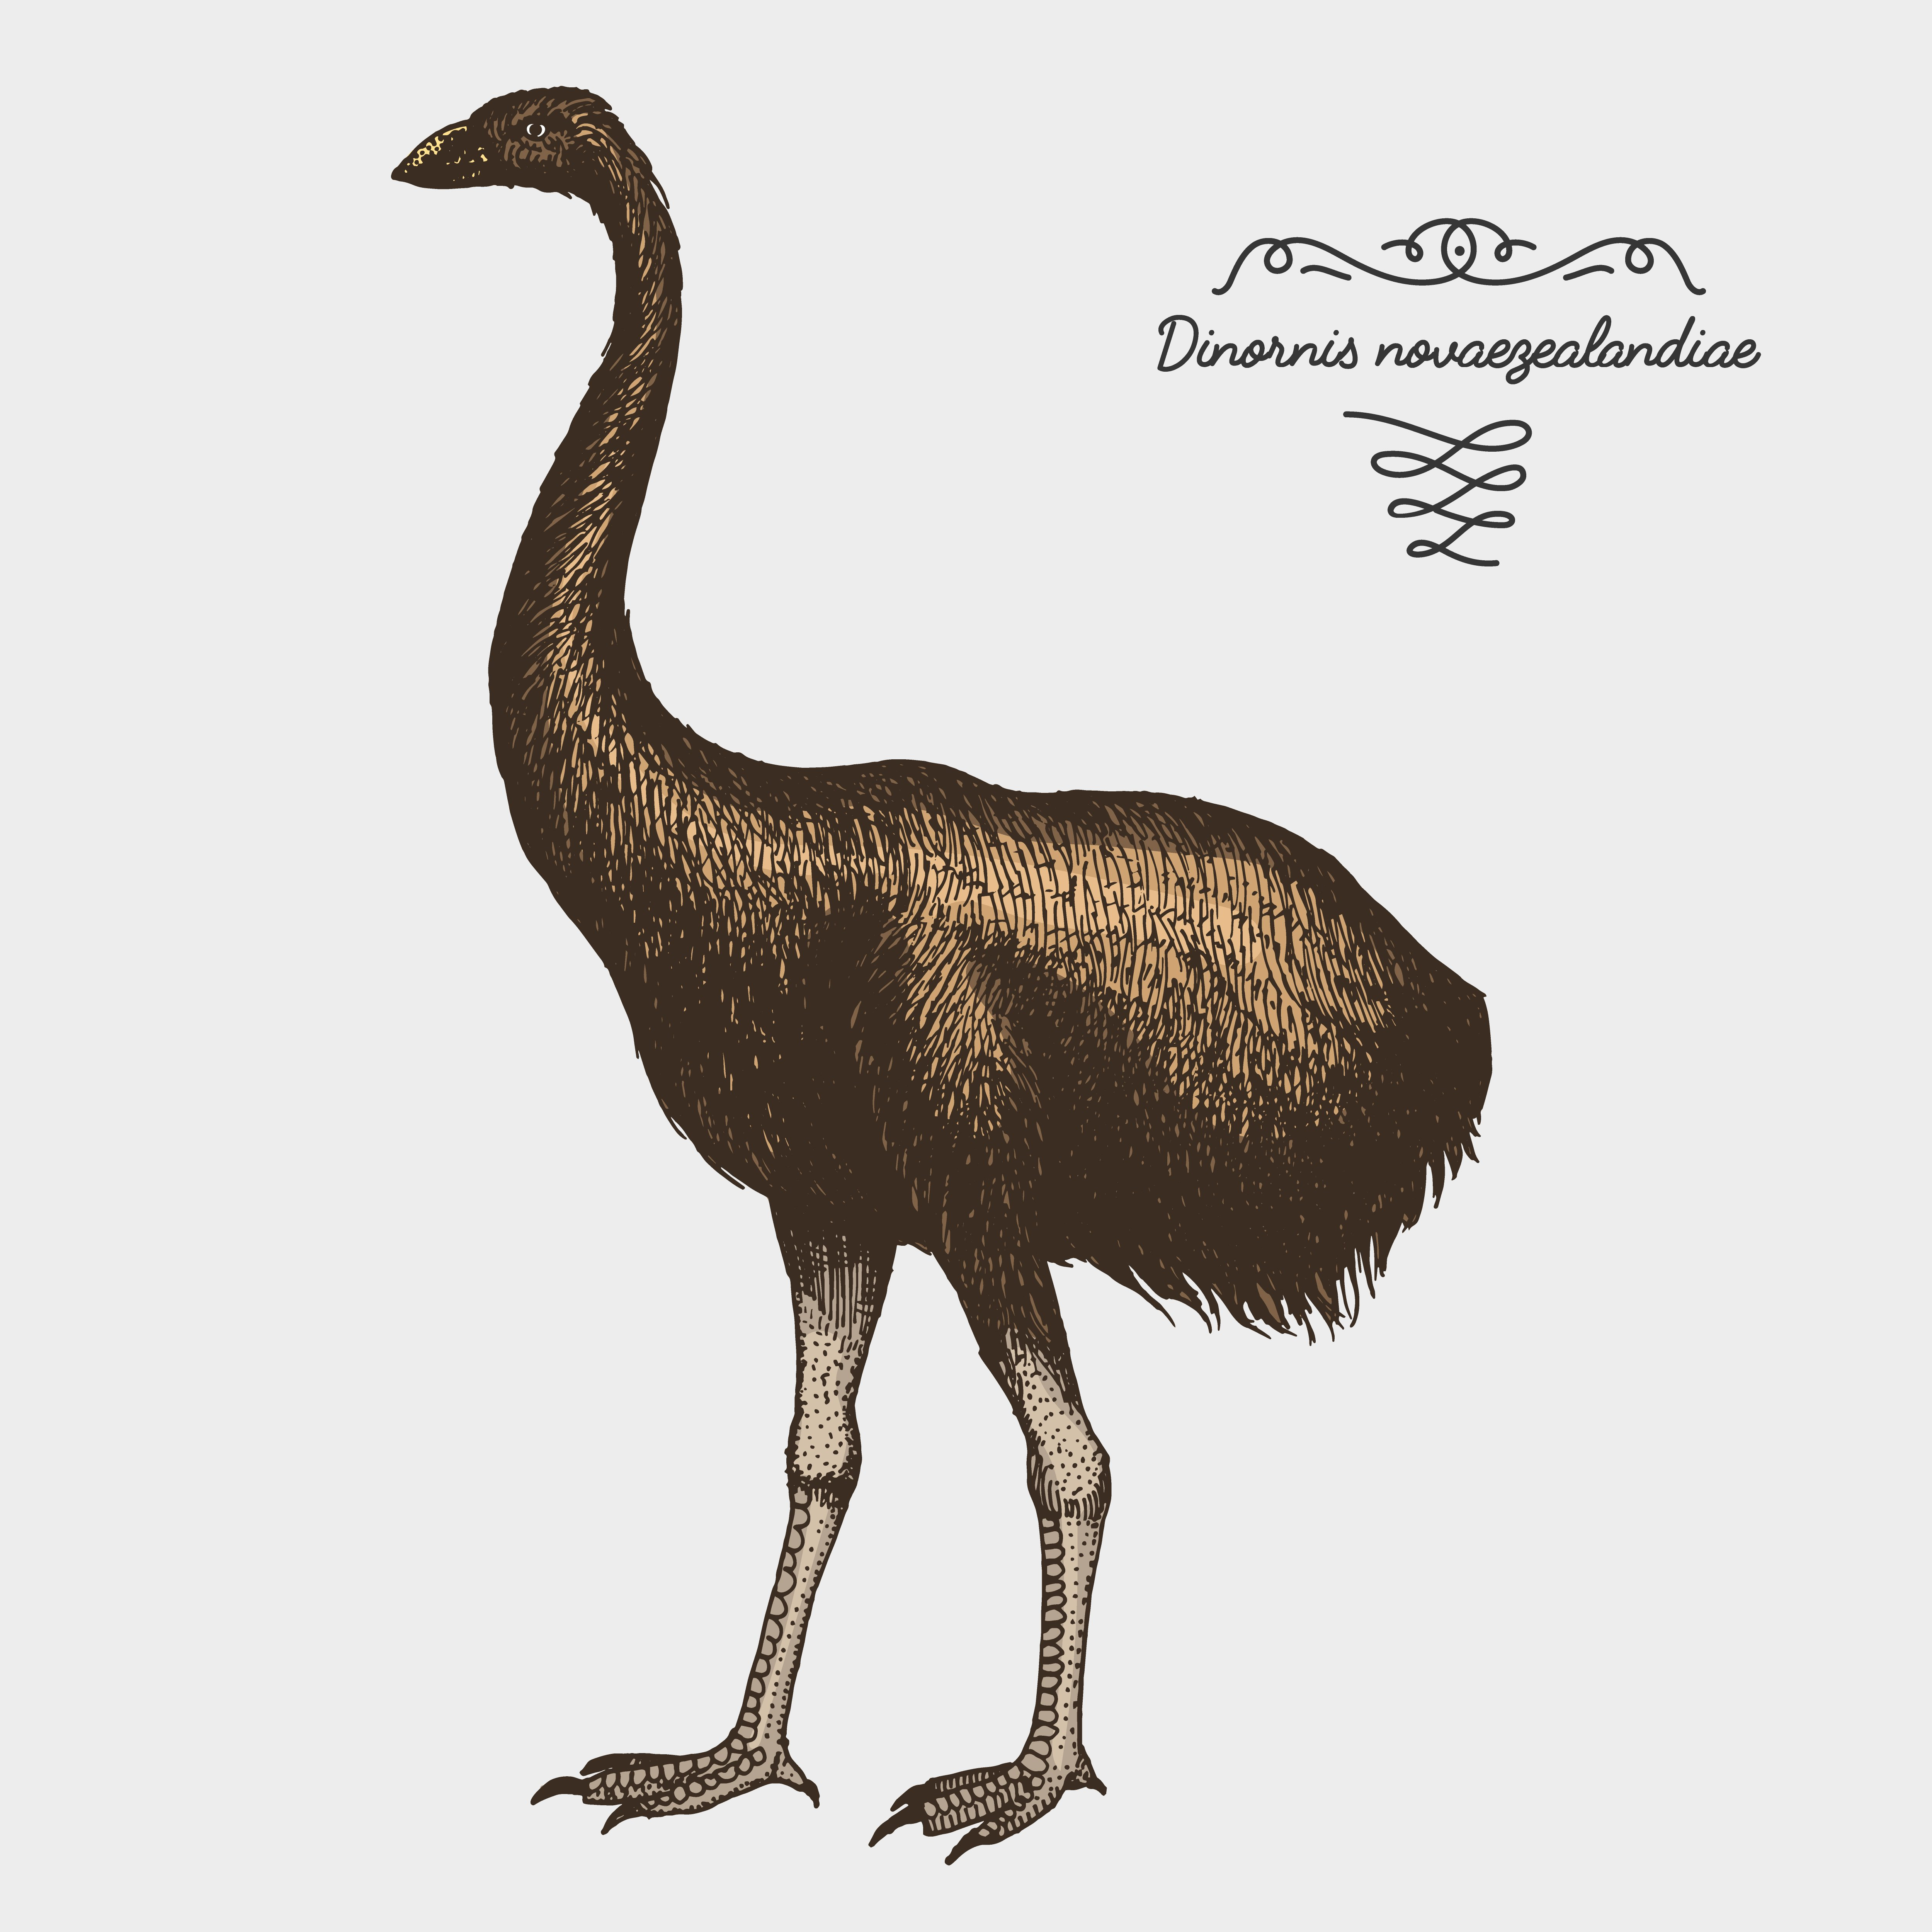 Hand drawn sketch of the moa bird | Shutterstock